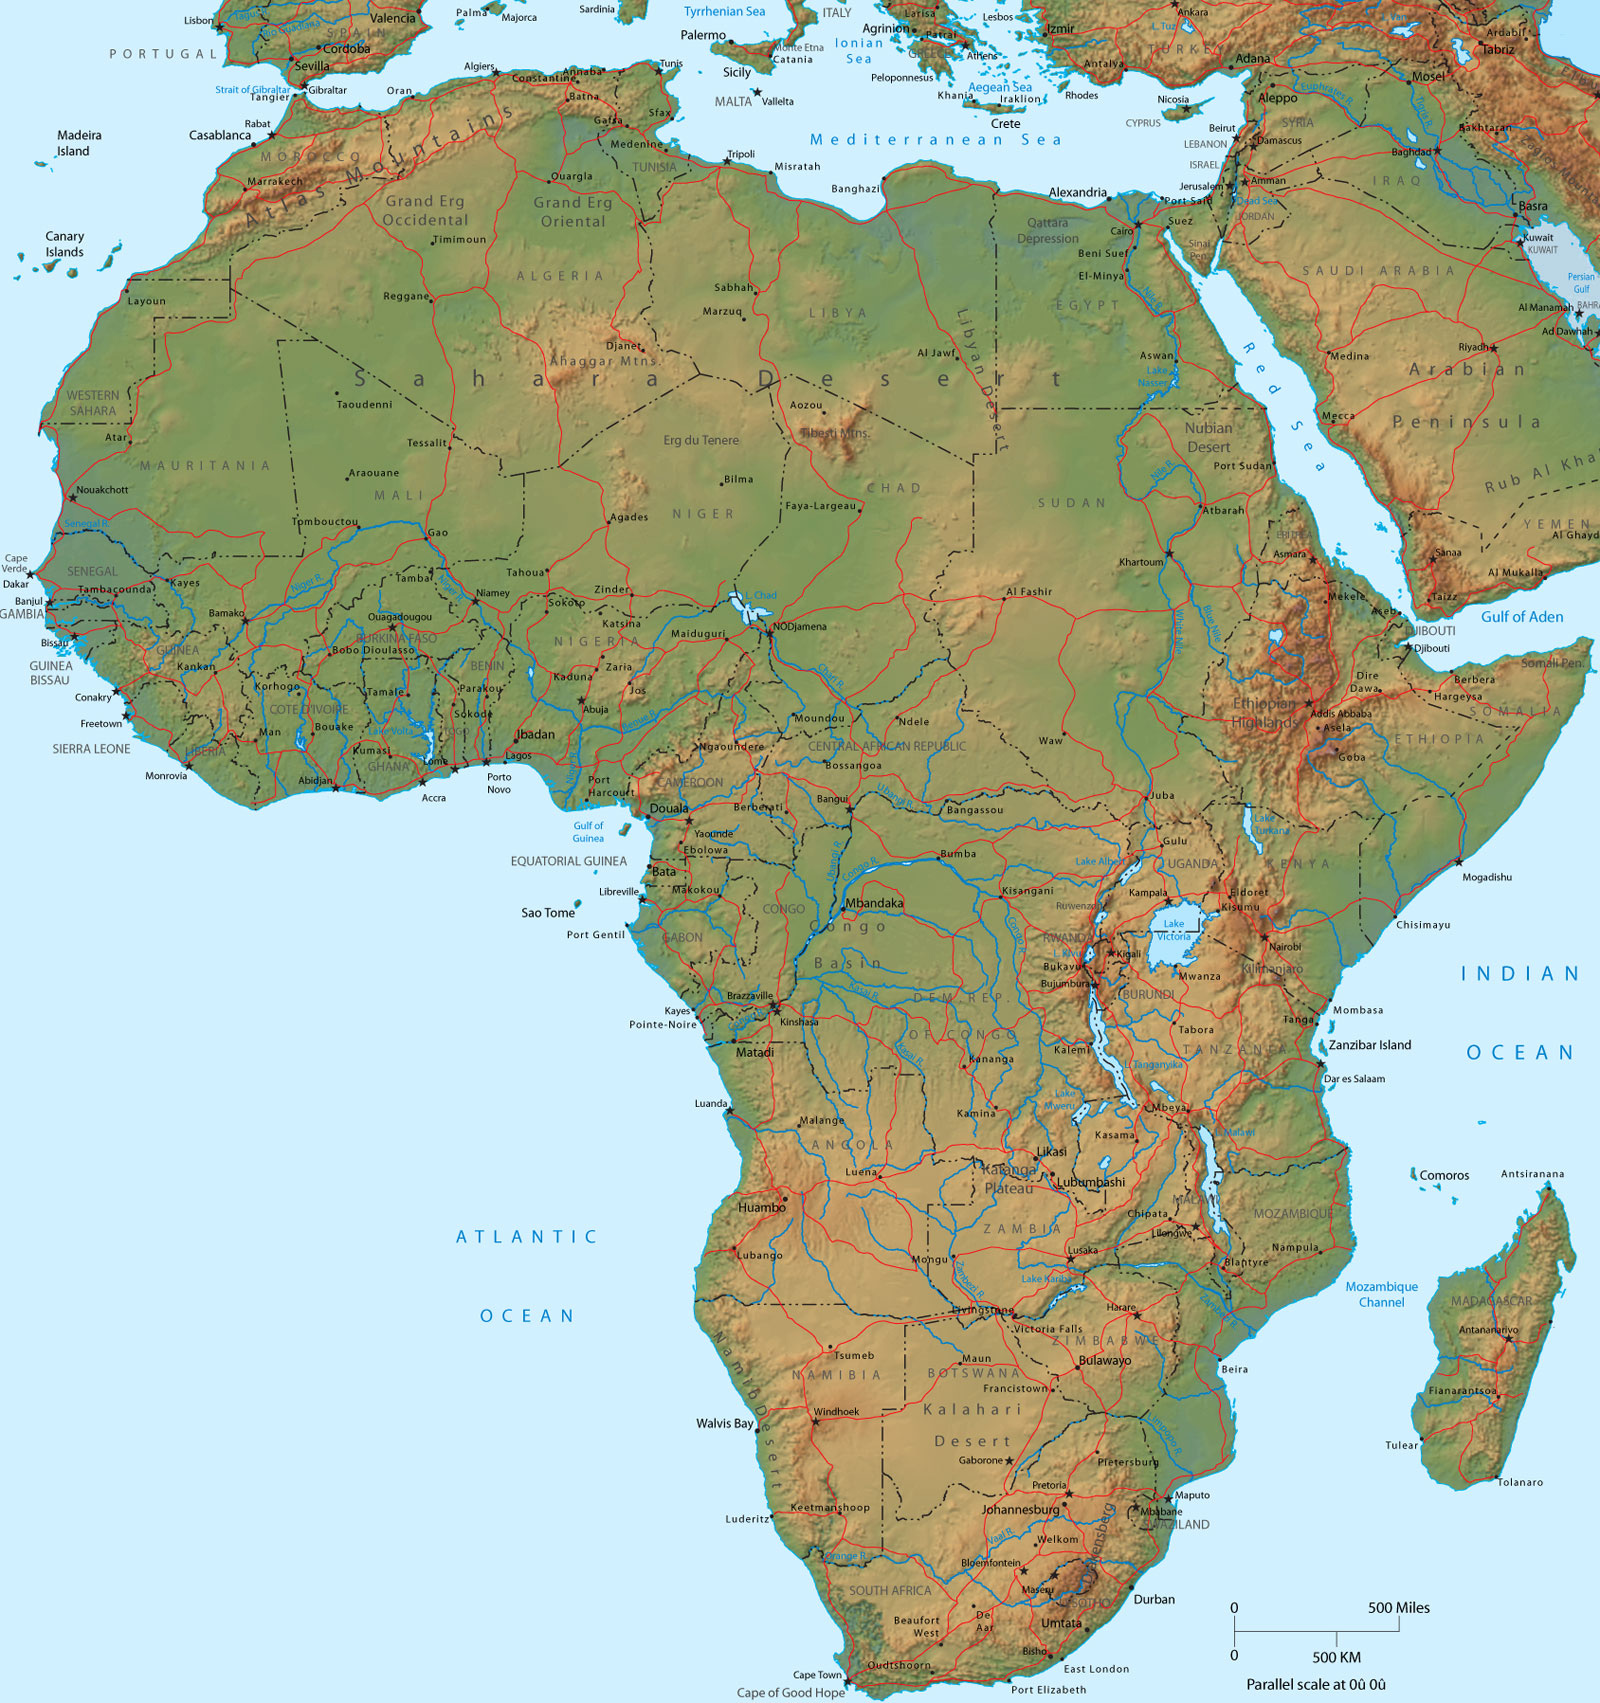 Africa Detailed Map.Large Detailed Relief Map Of Africa Africa Large Detailed